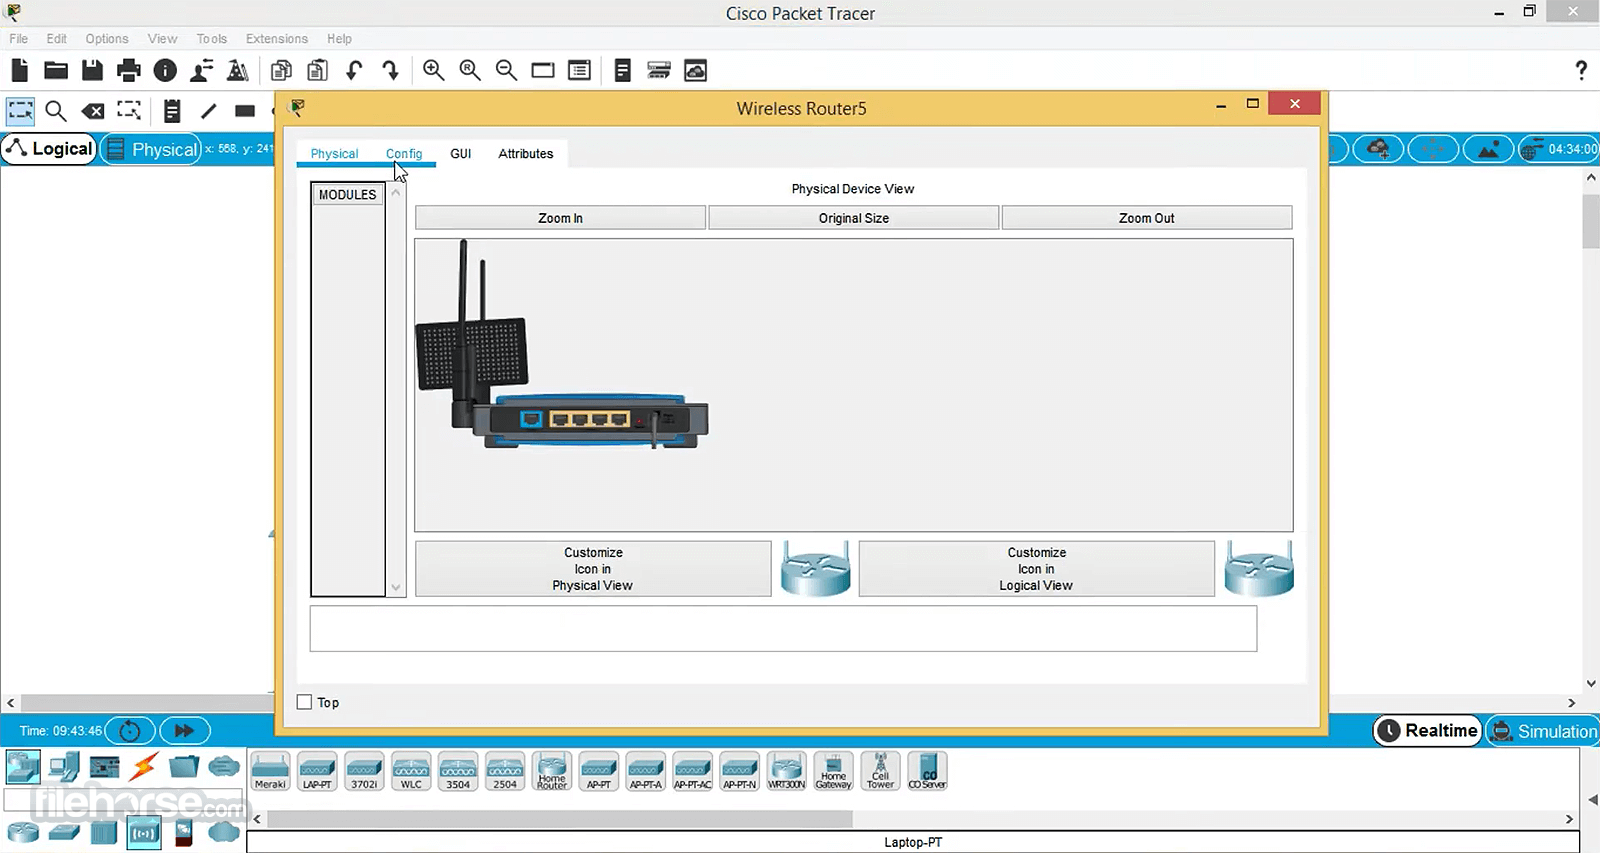 Cisco Packet Tracer 7.0 (64-bit) Captura de Pantalla 2